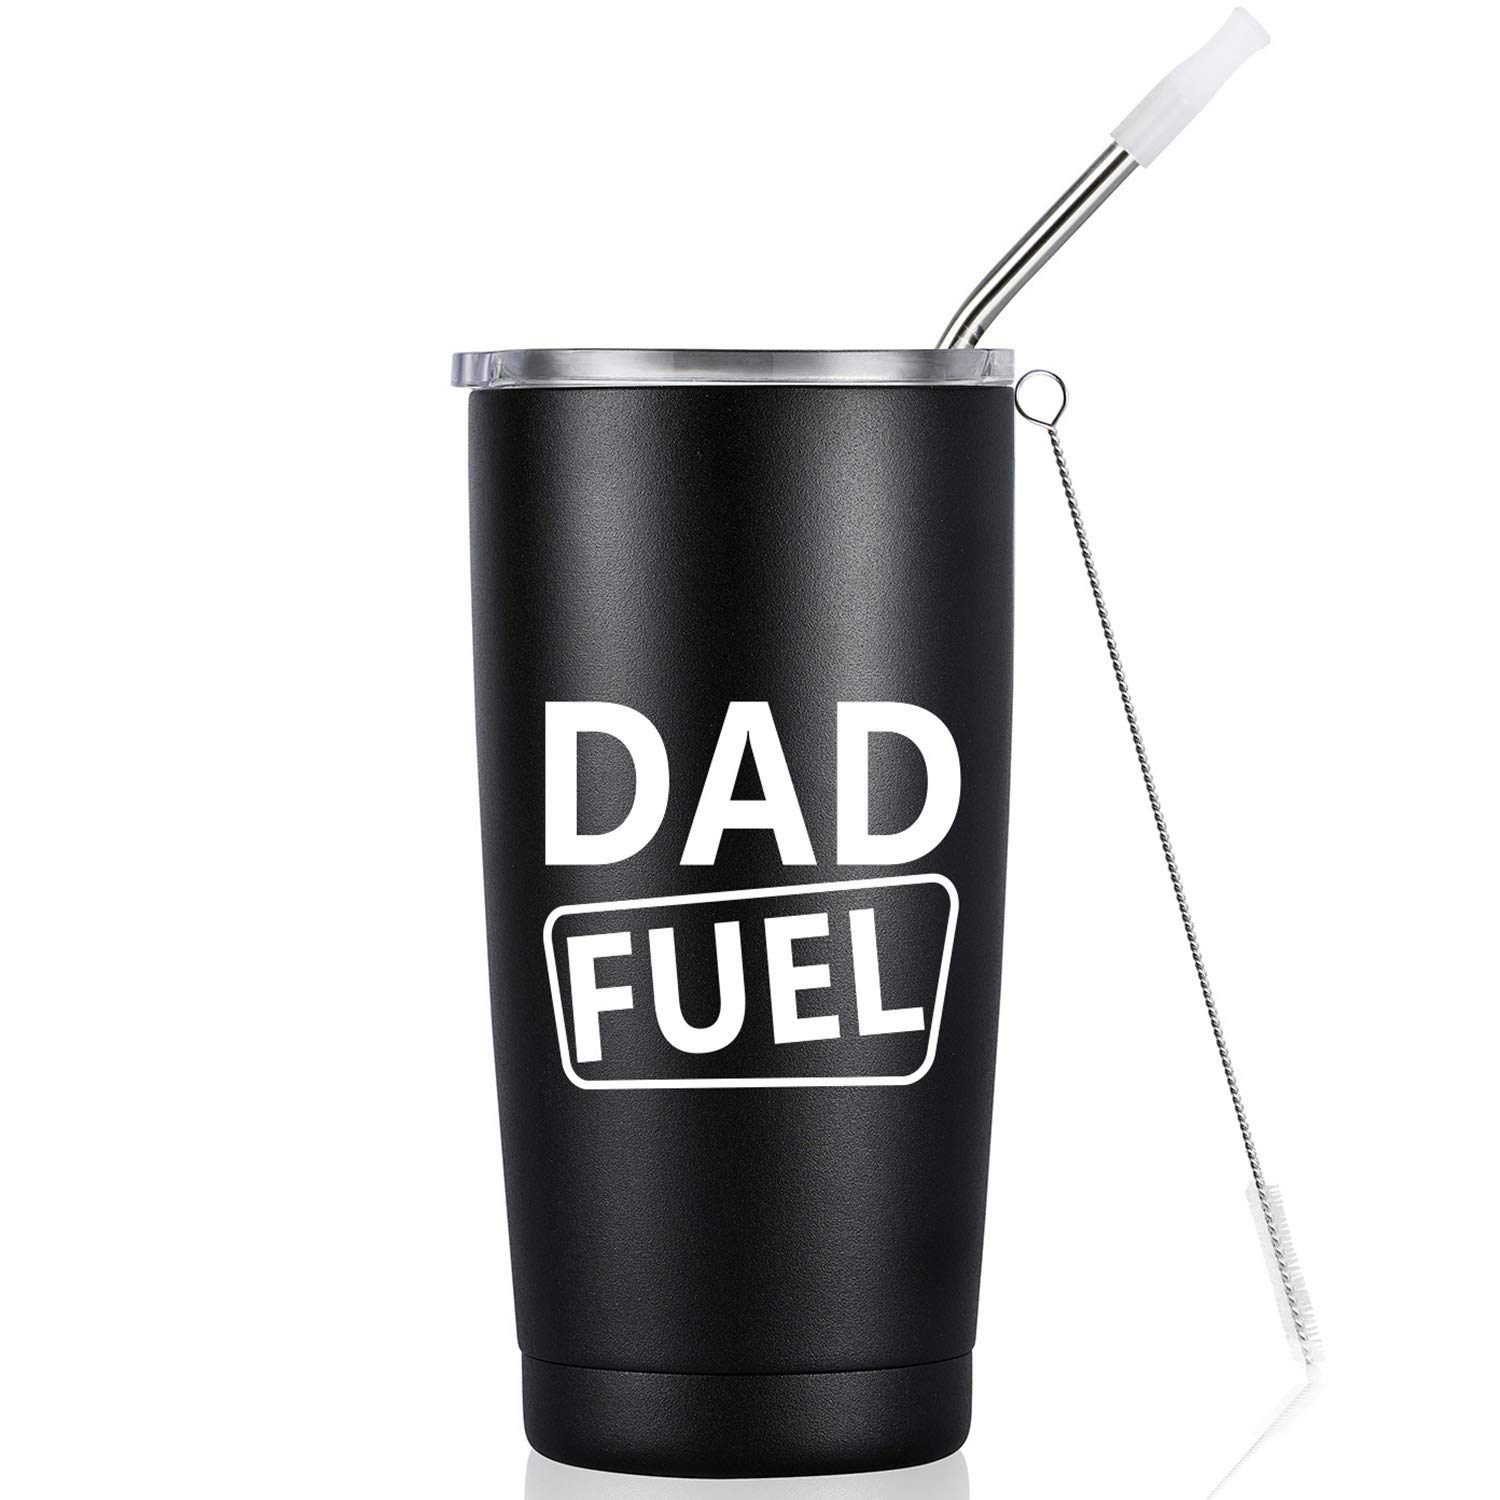 75c989a43f2 Amazon.com: Dad Fuel | Funny Birthday Tumbler | 20 Oz Vacuum-Insulated  Stainless Steel Tumbler Mug with Lid, Birthday Gift for Dad Men Father Daddy  Him: ...